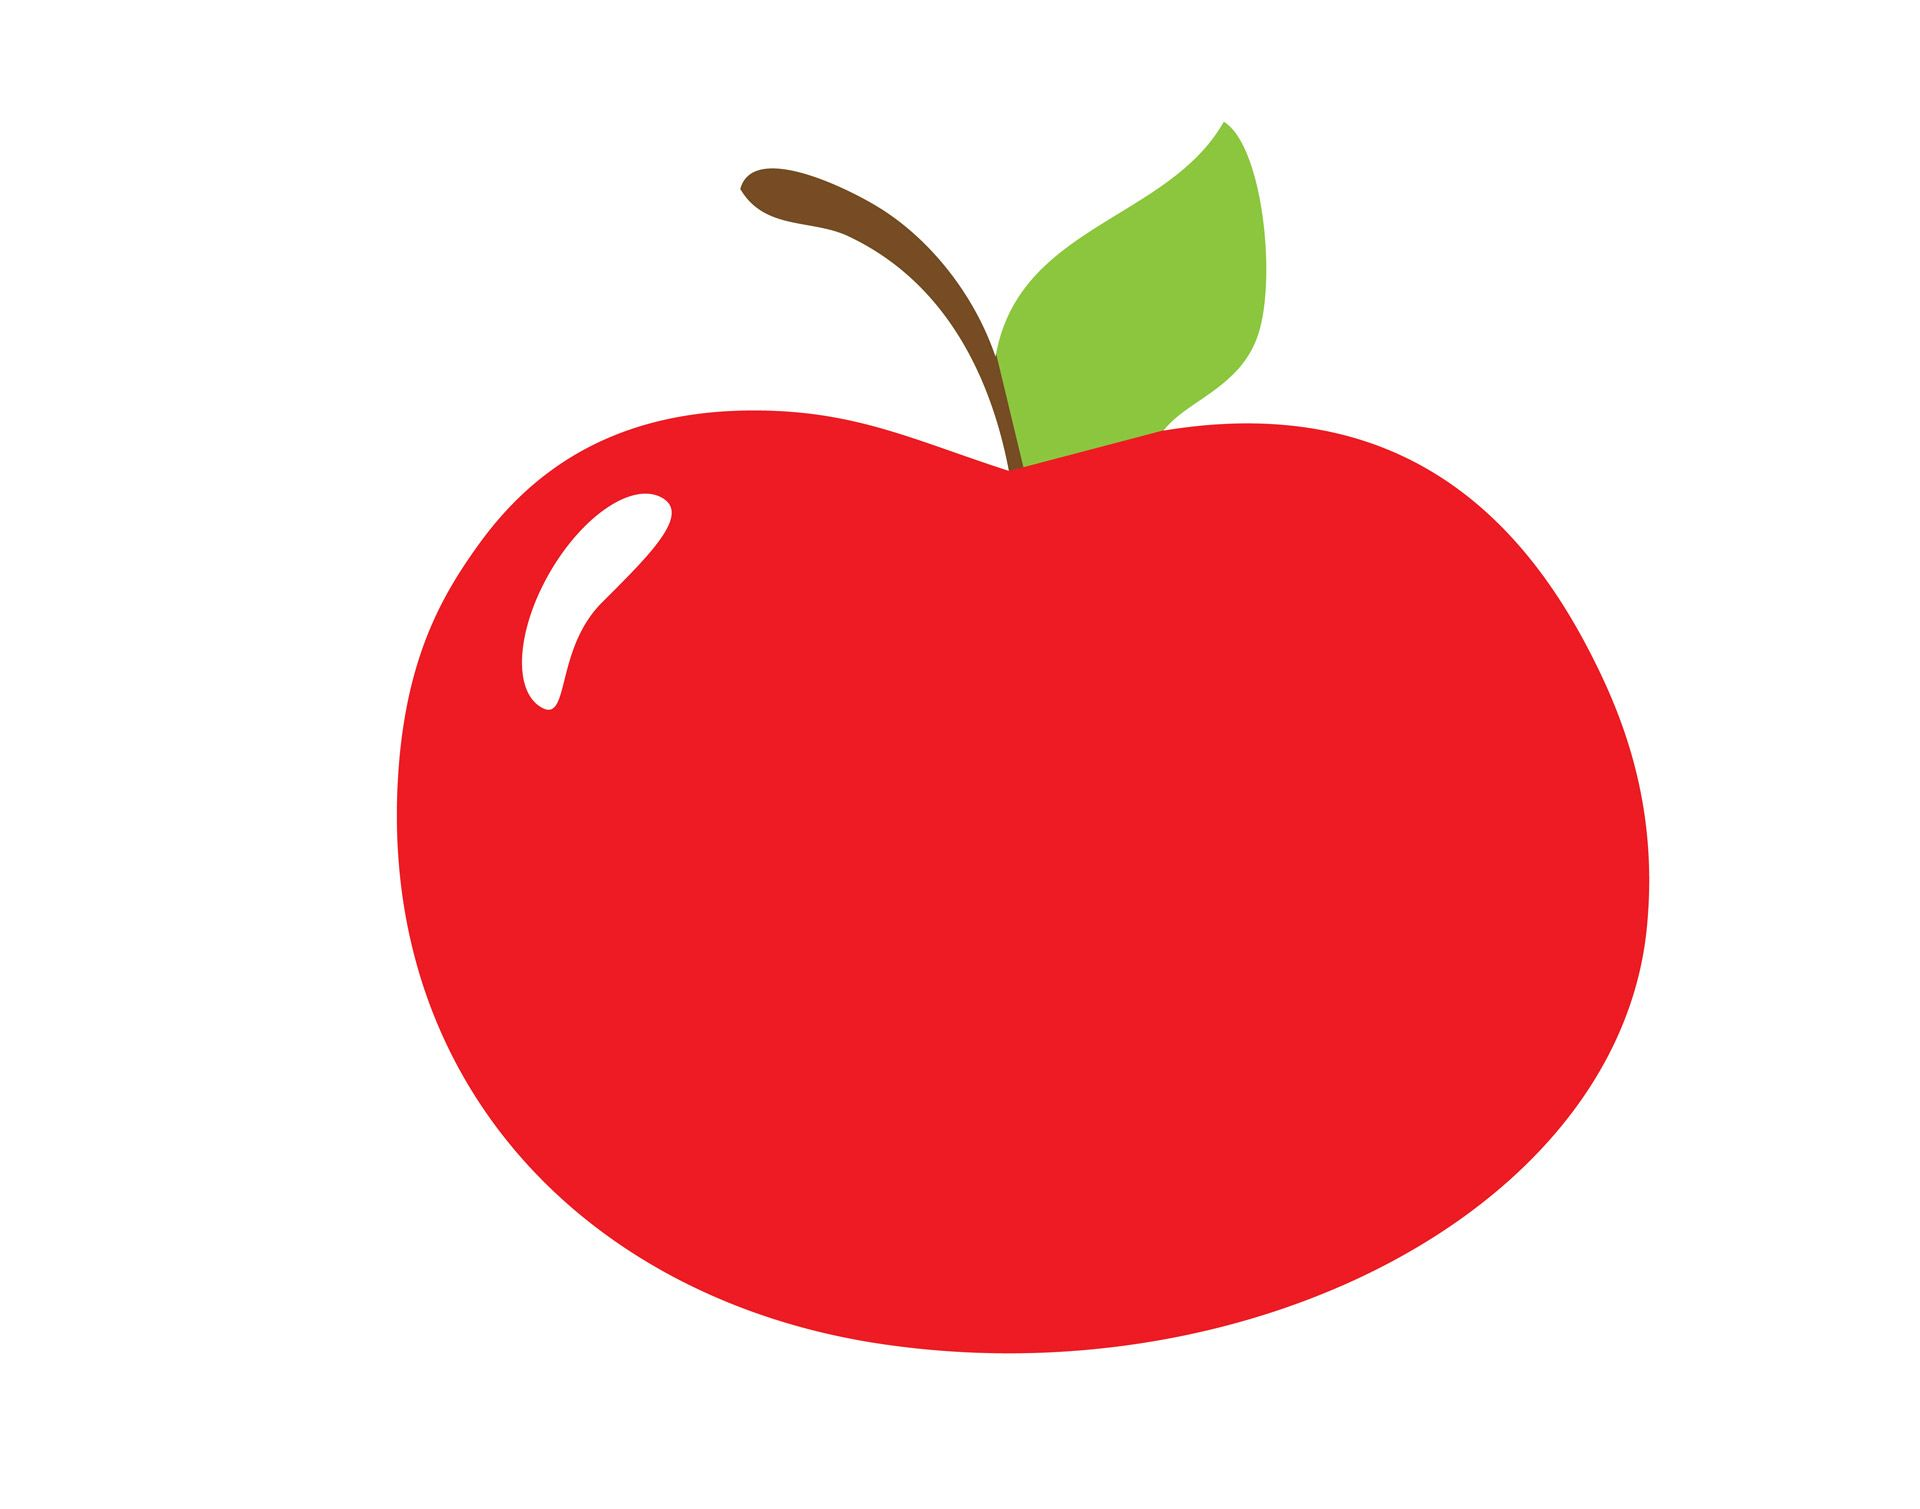 red apple clipart free stock photo public domain pictures [ 1920 x 1509 Pixel ]